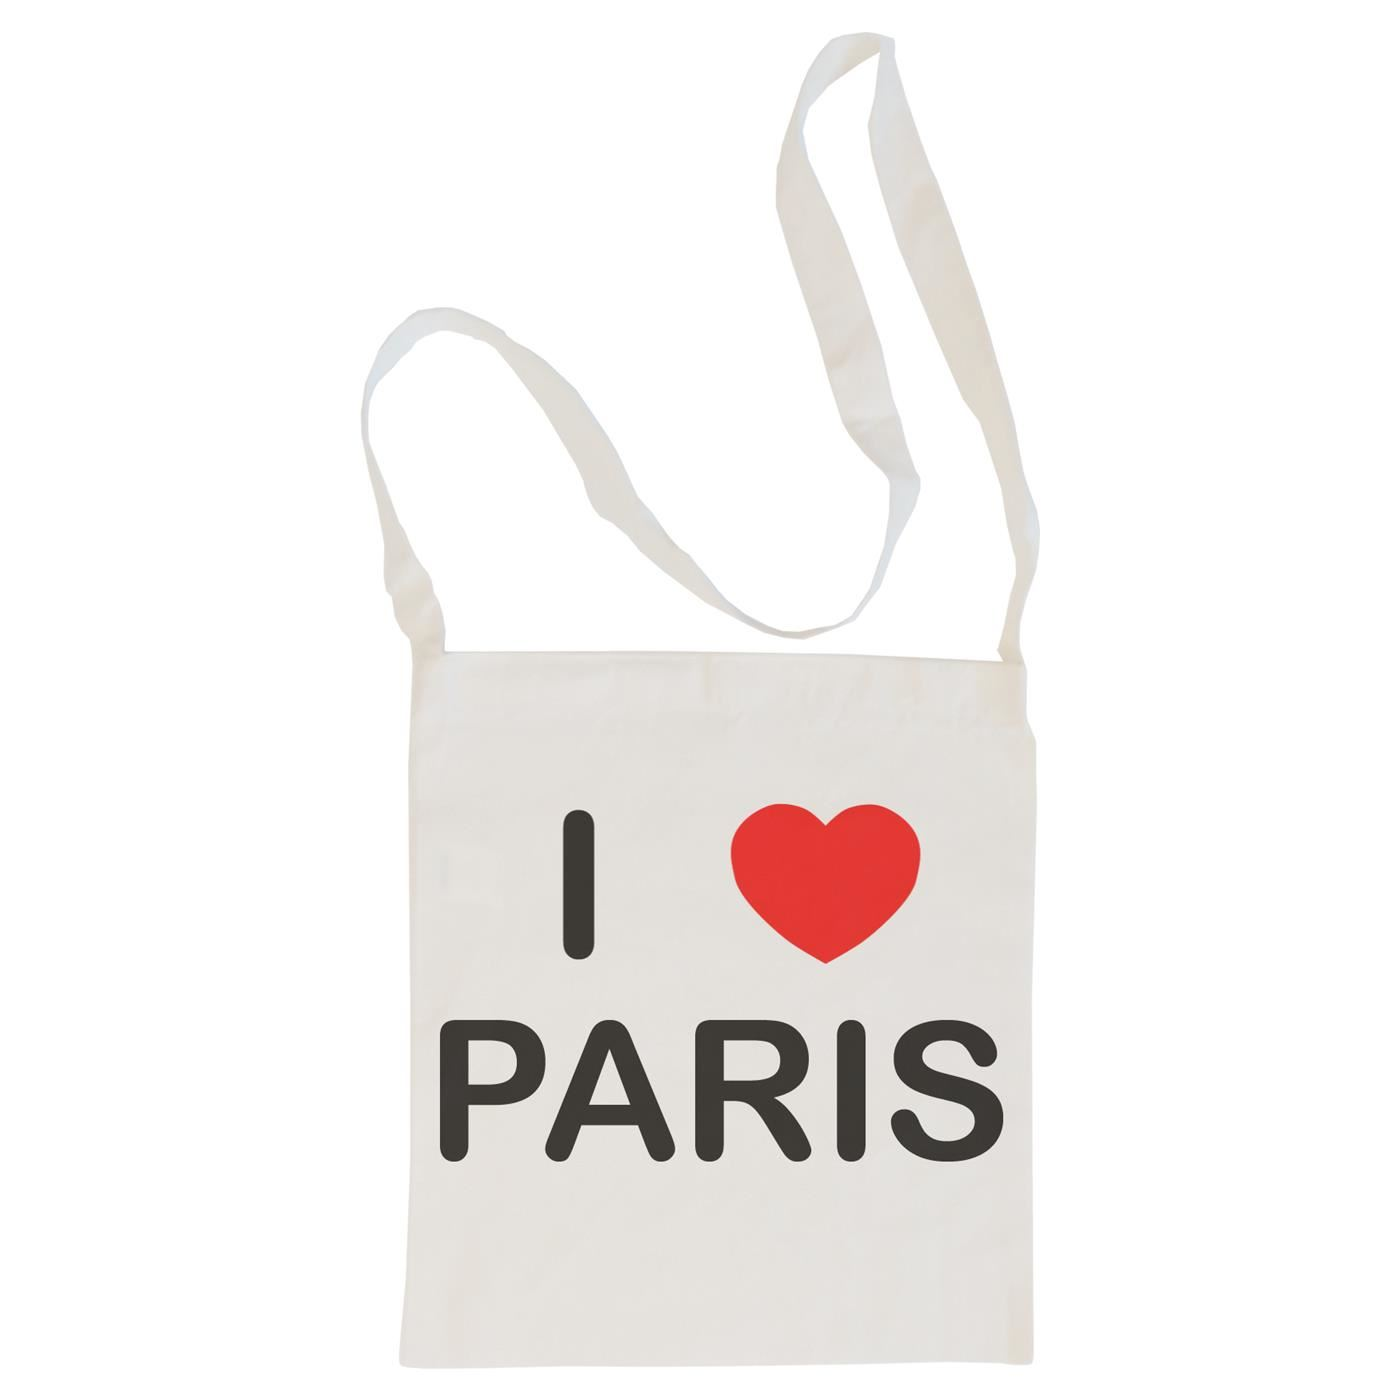 I Love Paris - Cotton Bag